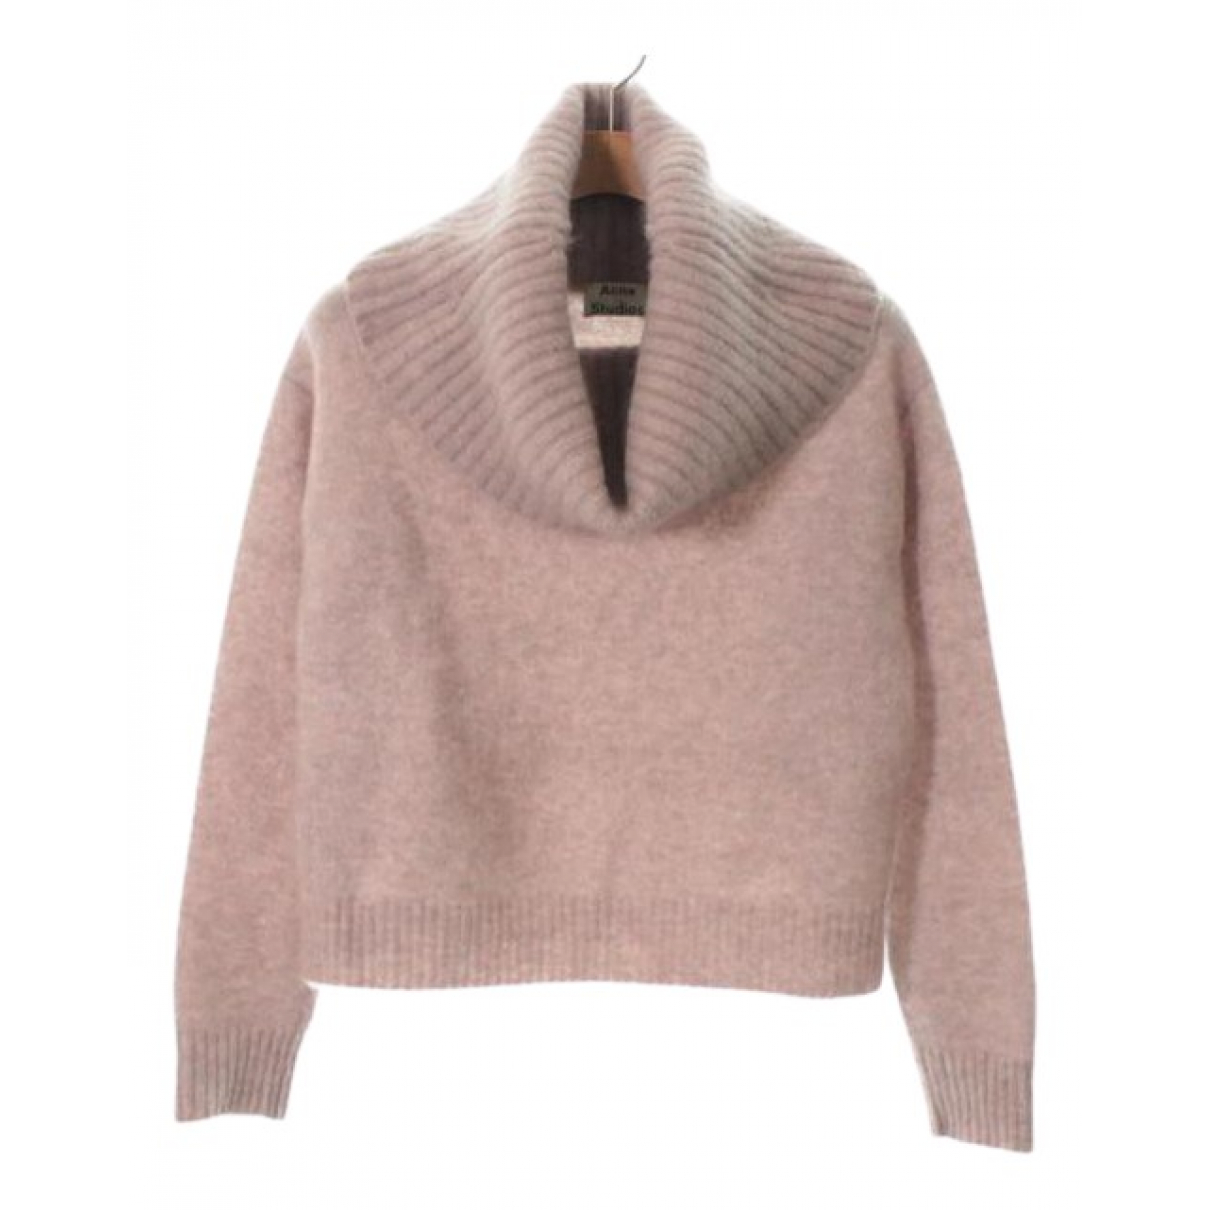 Acne Studios \N Pullover in  Rosa Wolle